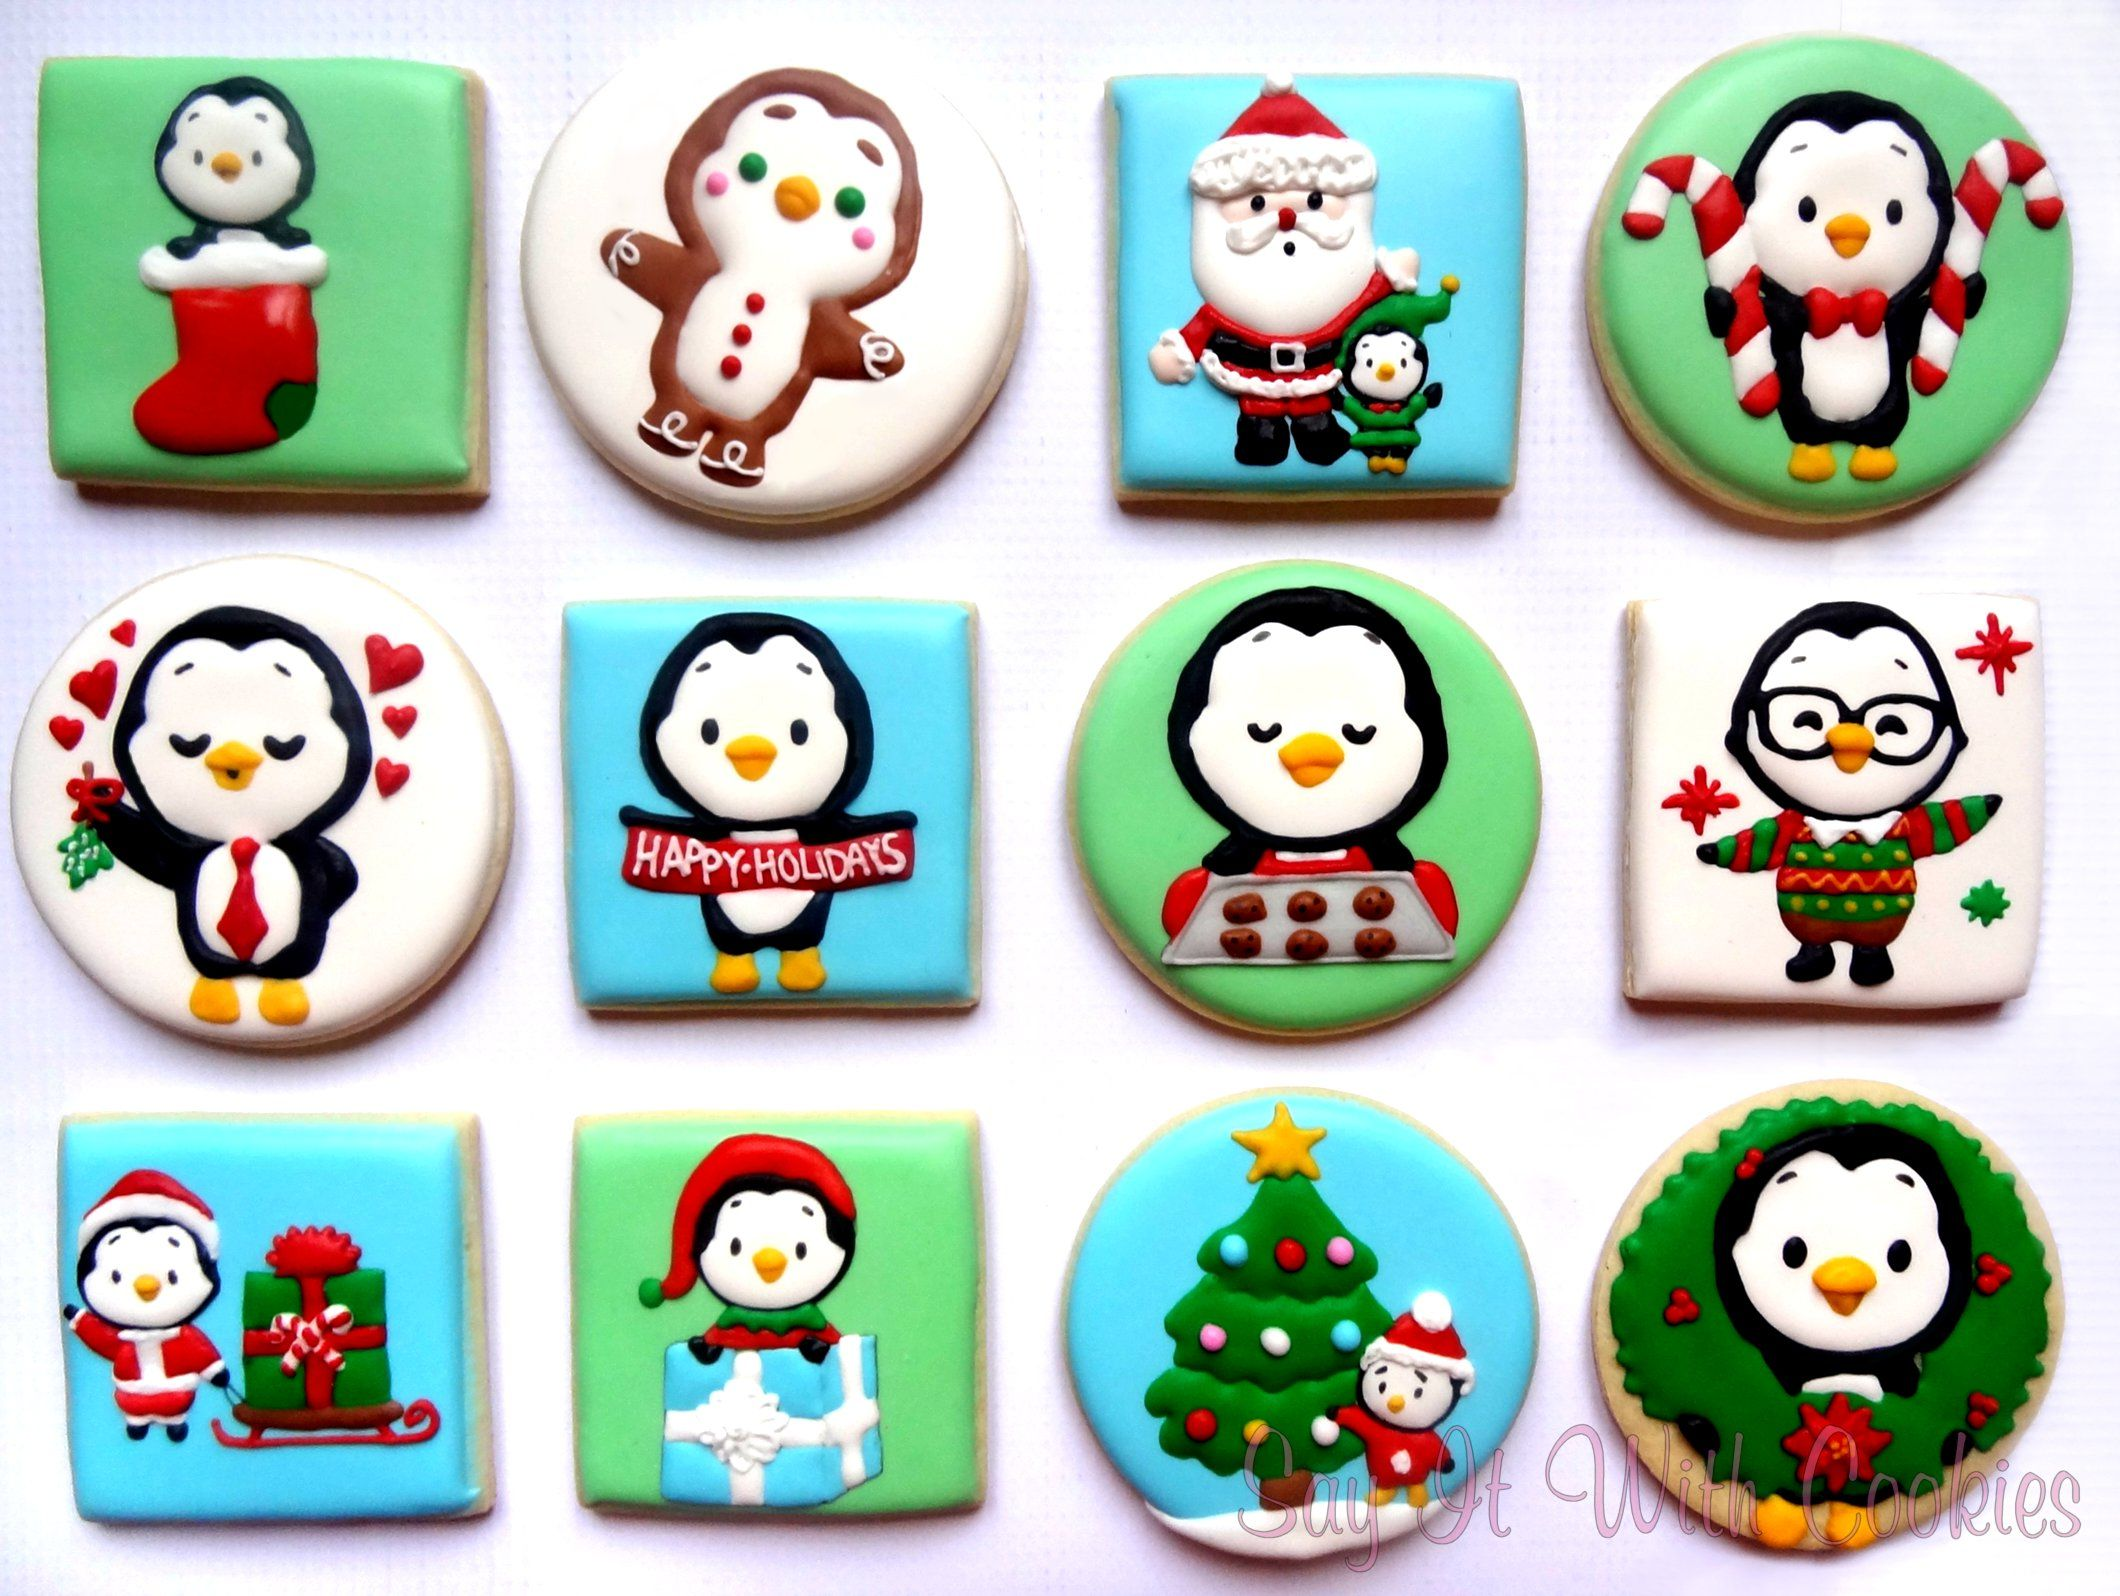 Facebook Sticker Waddles The Penguin Hand Decorated Sugar Cookies